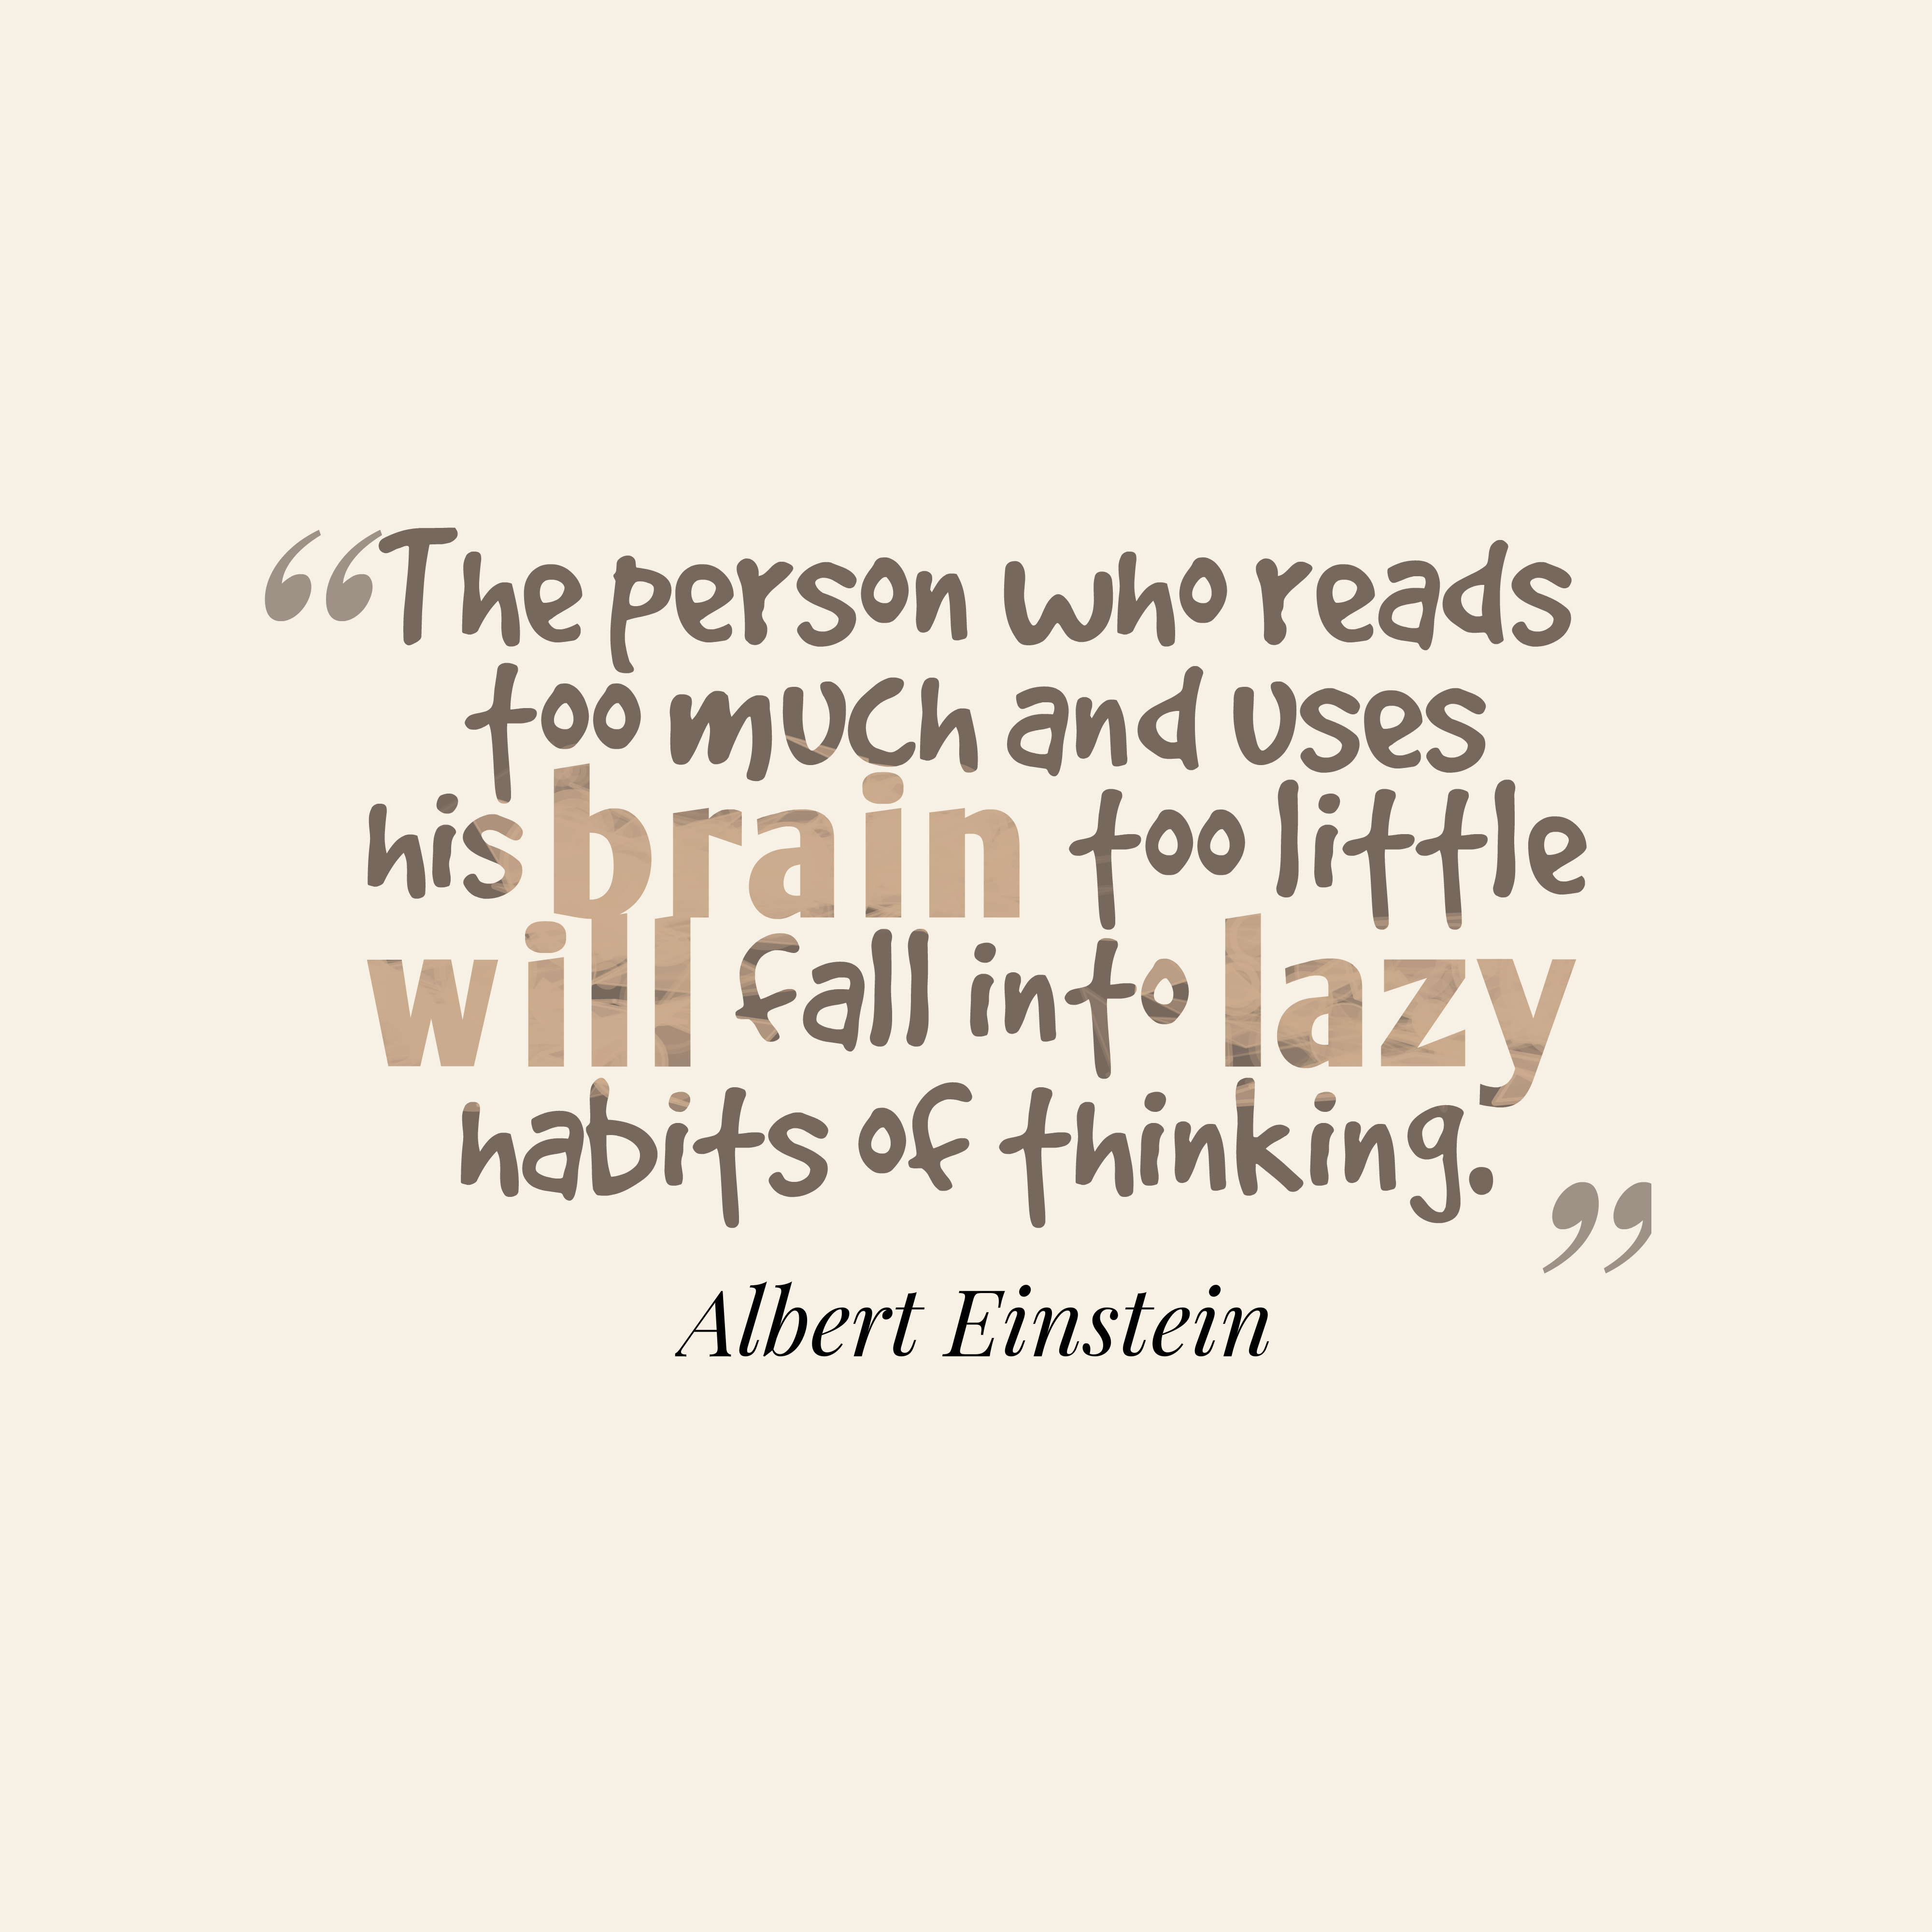 Quotes image of The person who reads too much and uses his brain too little will fall into lazy habits of thinking.